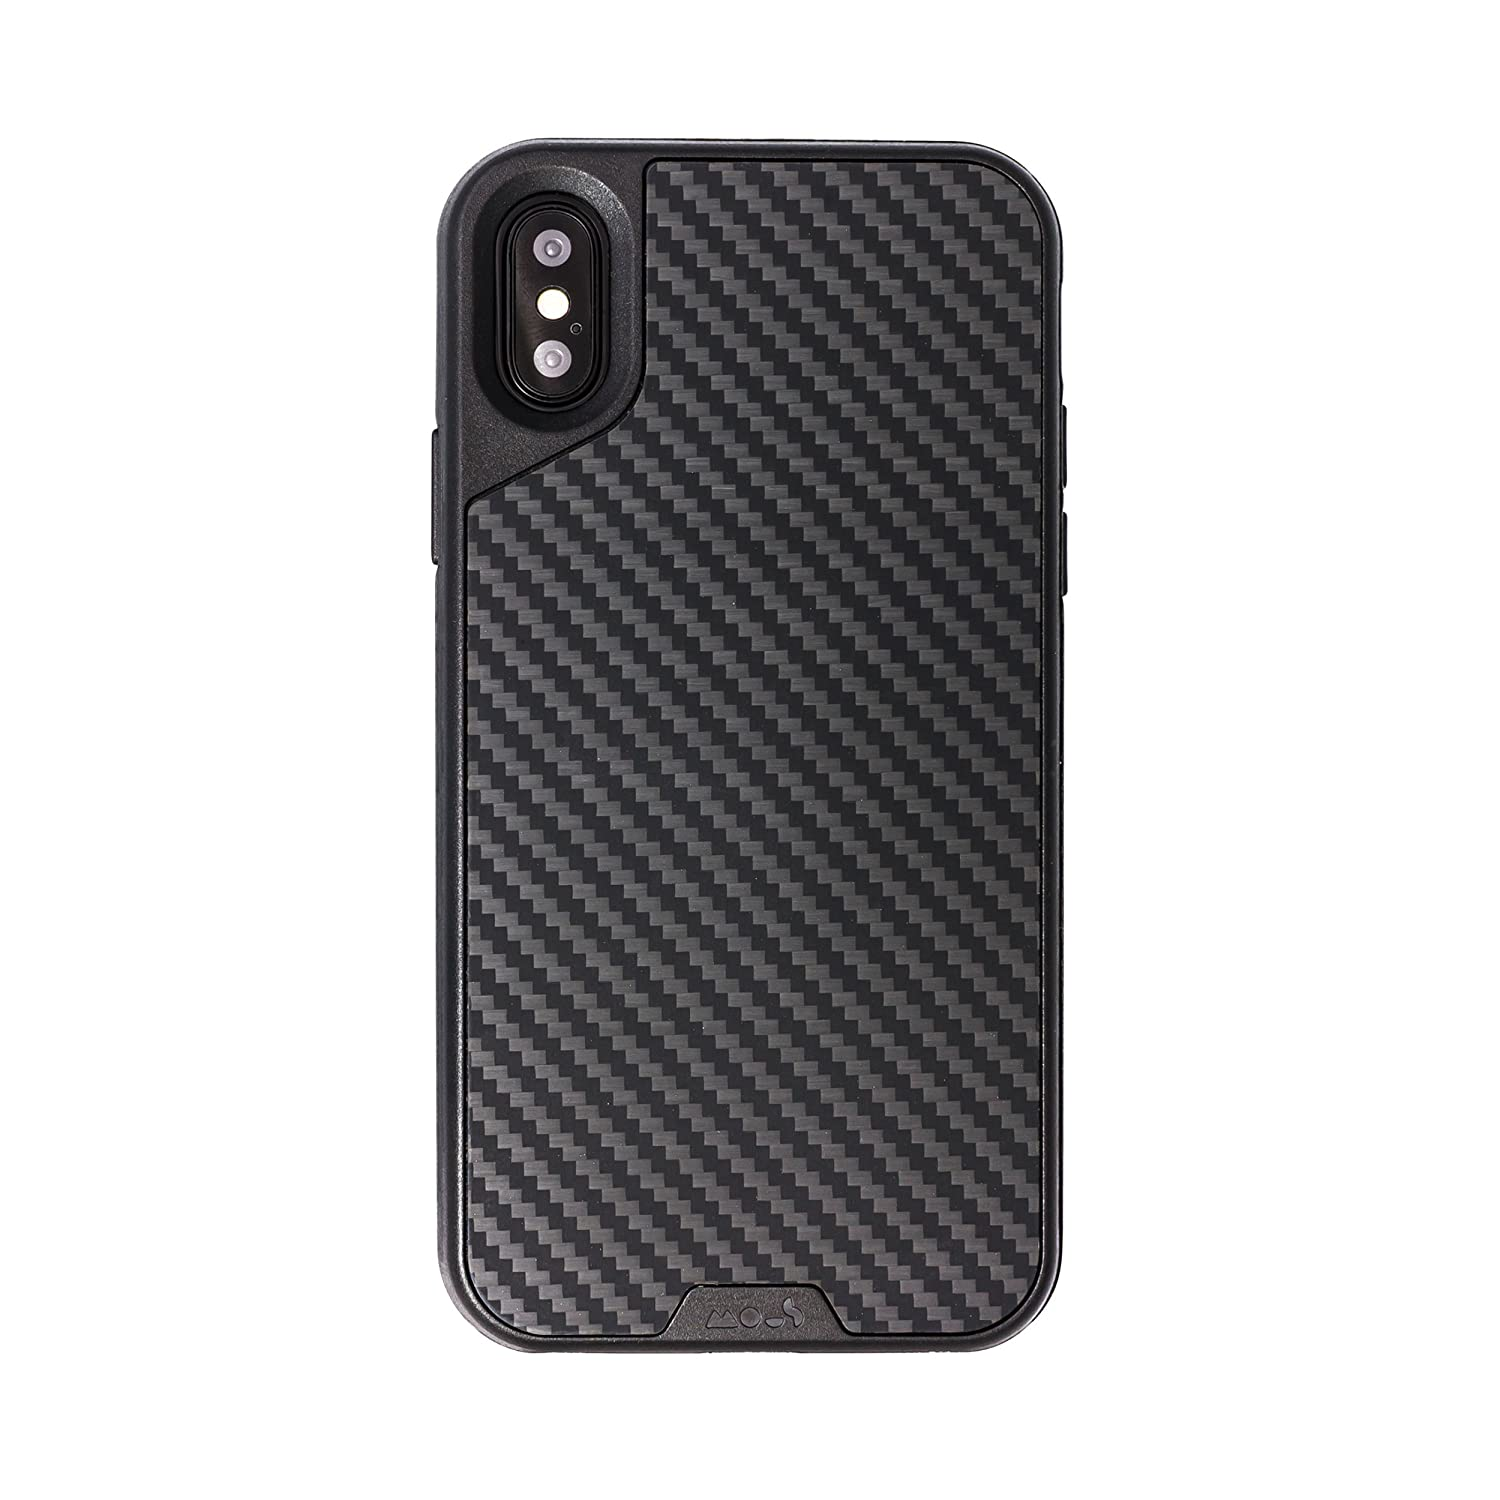 cheaper 42cea f8c3b Mous Limitless 2.0 Aramid Carbon Fibre Case w: Amazon.in: Electronics